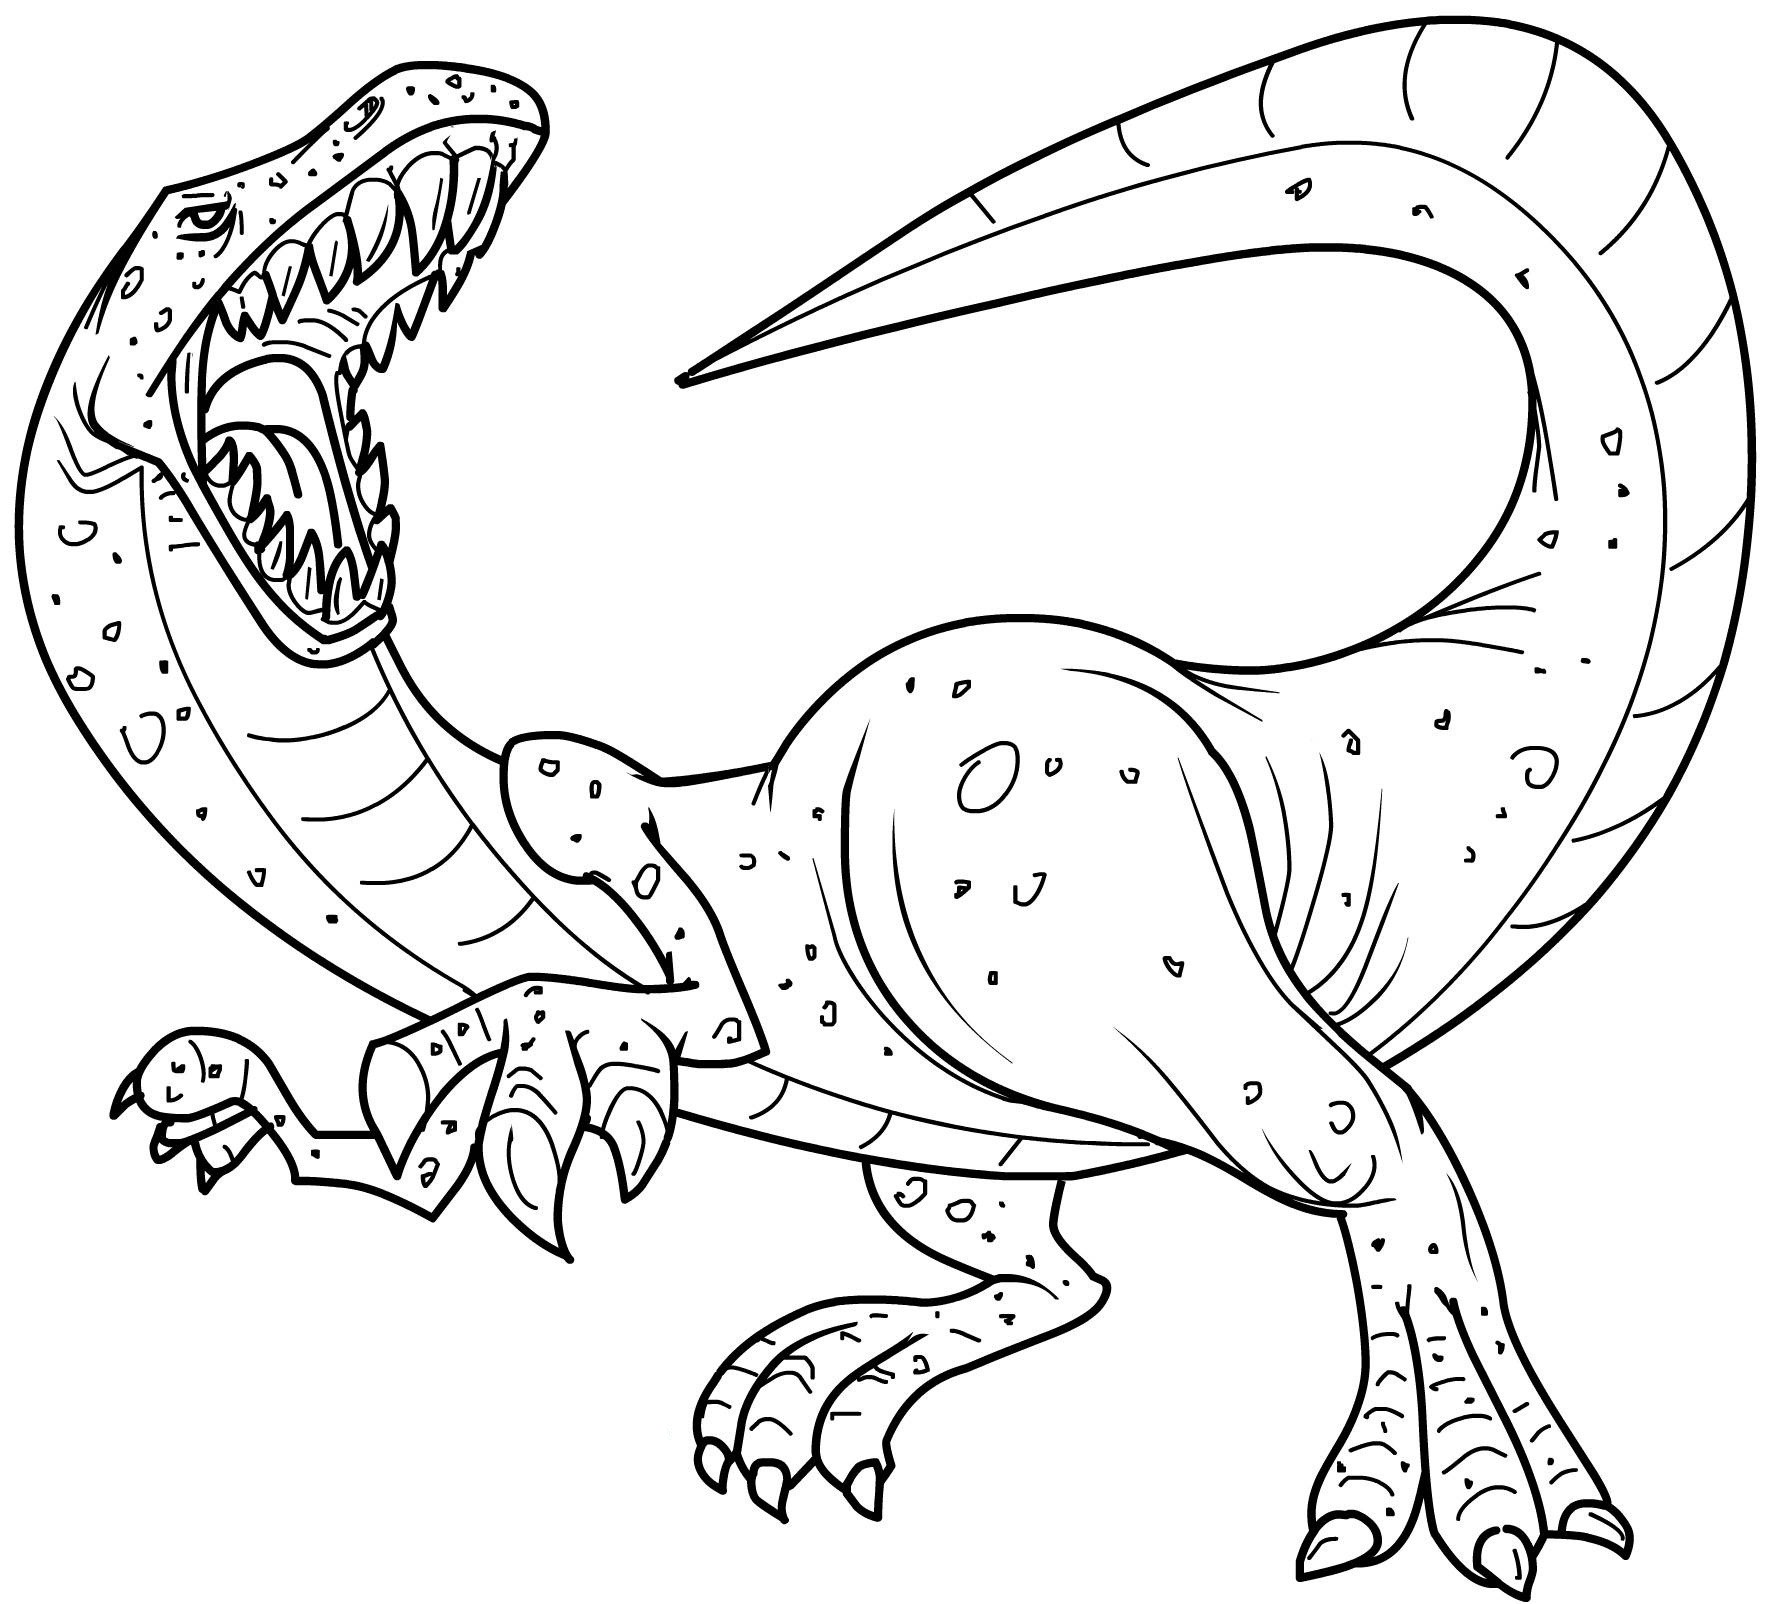 dinsaur coloring pages - photo#19